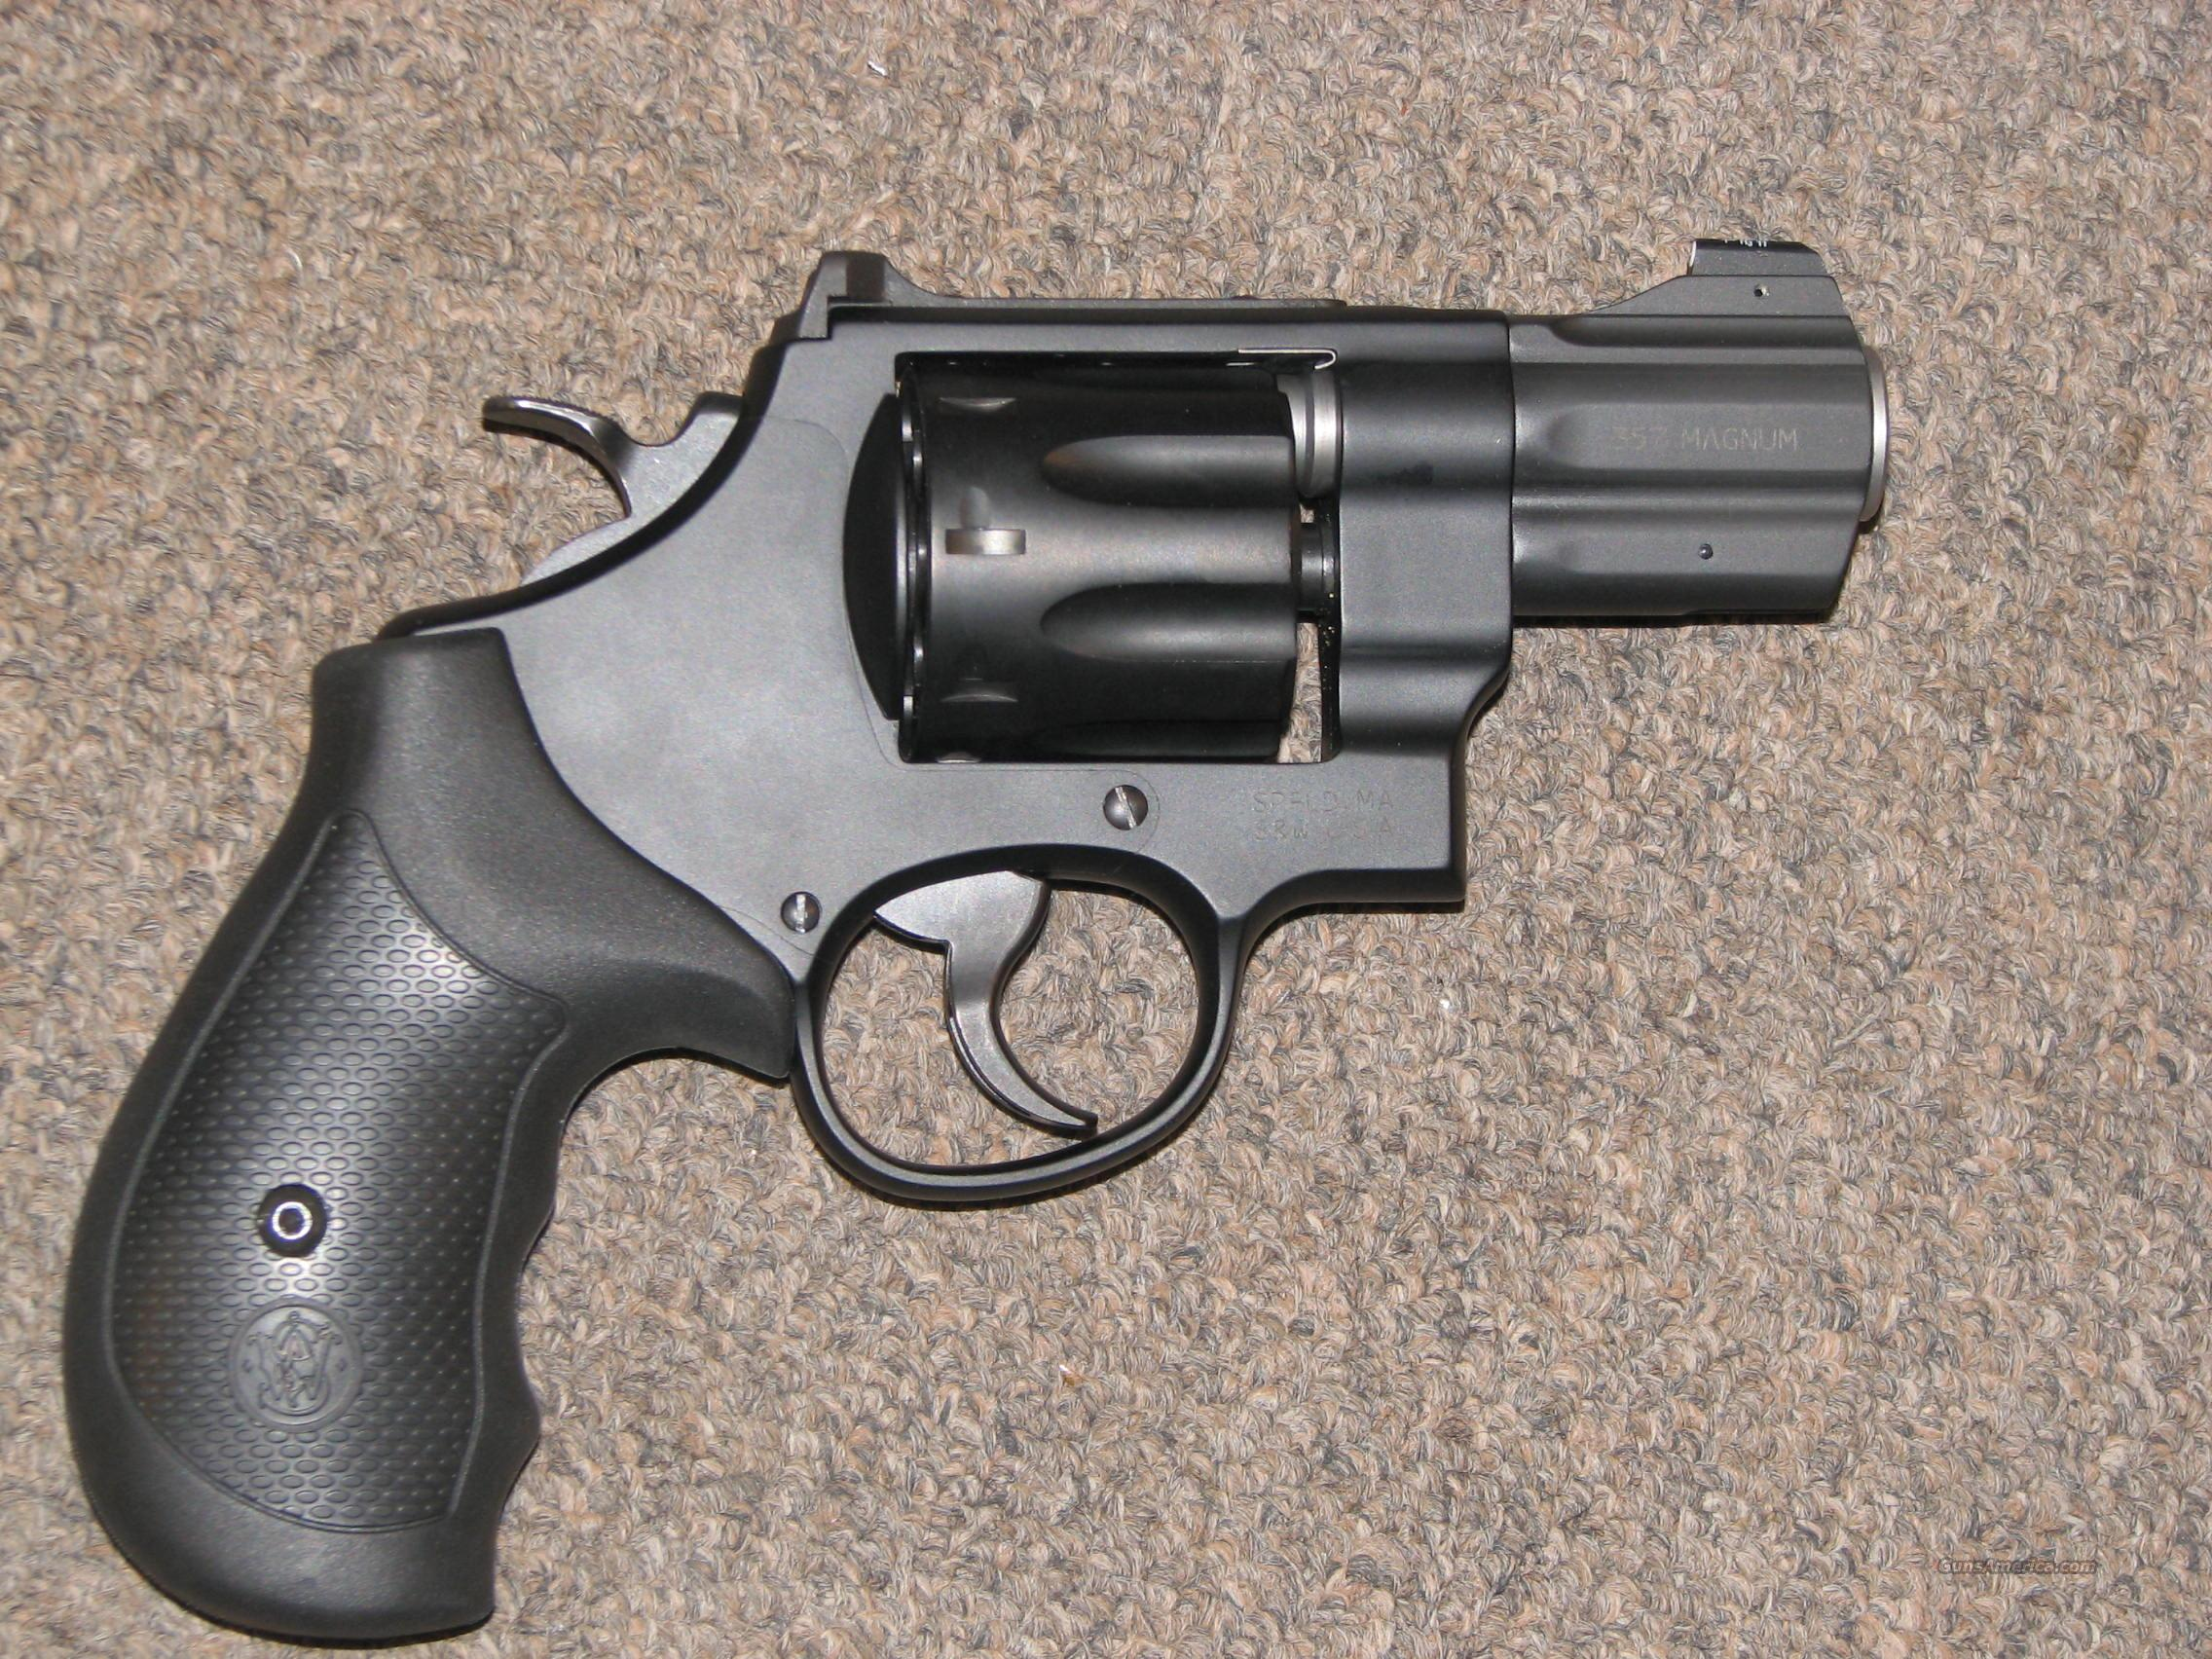 SMITH & WESSON 327 NIGHT GUARD .357 MAG - NEW!  Guns > Pistols > Smith & Wesson Revolvers > Full Frame Revolver